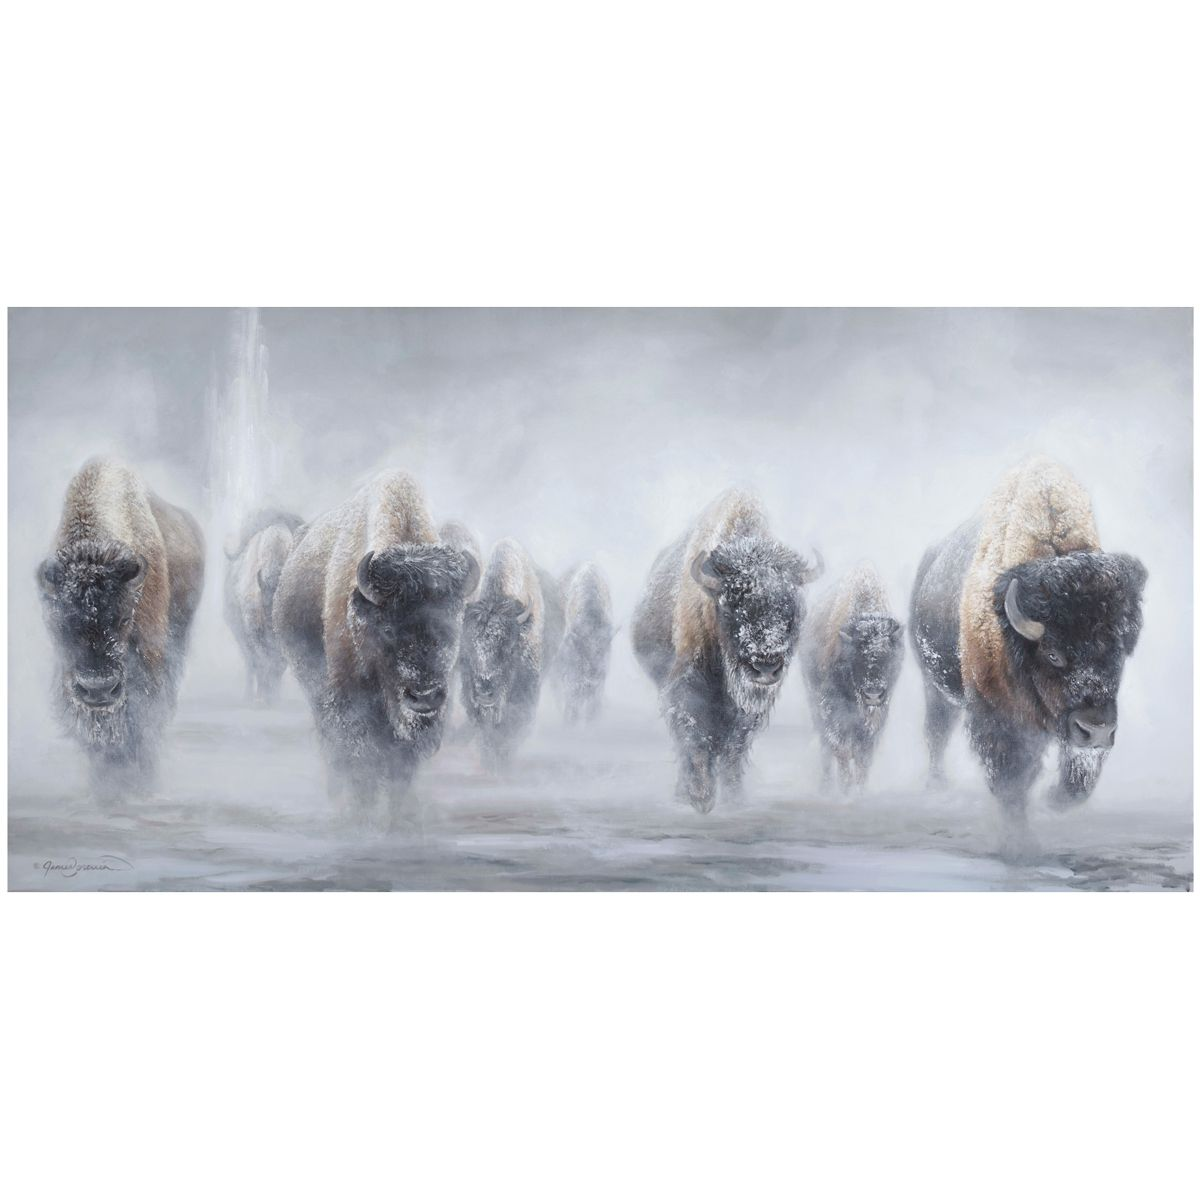 Giants in the Mist II Limited Edition Print